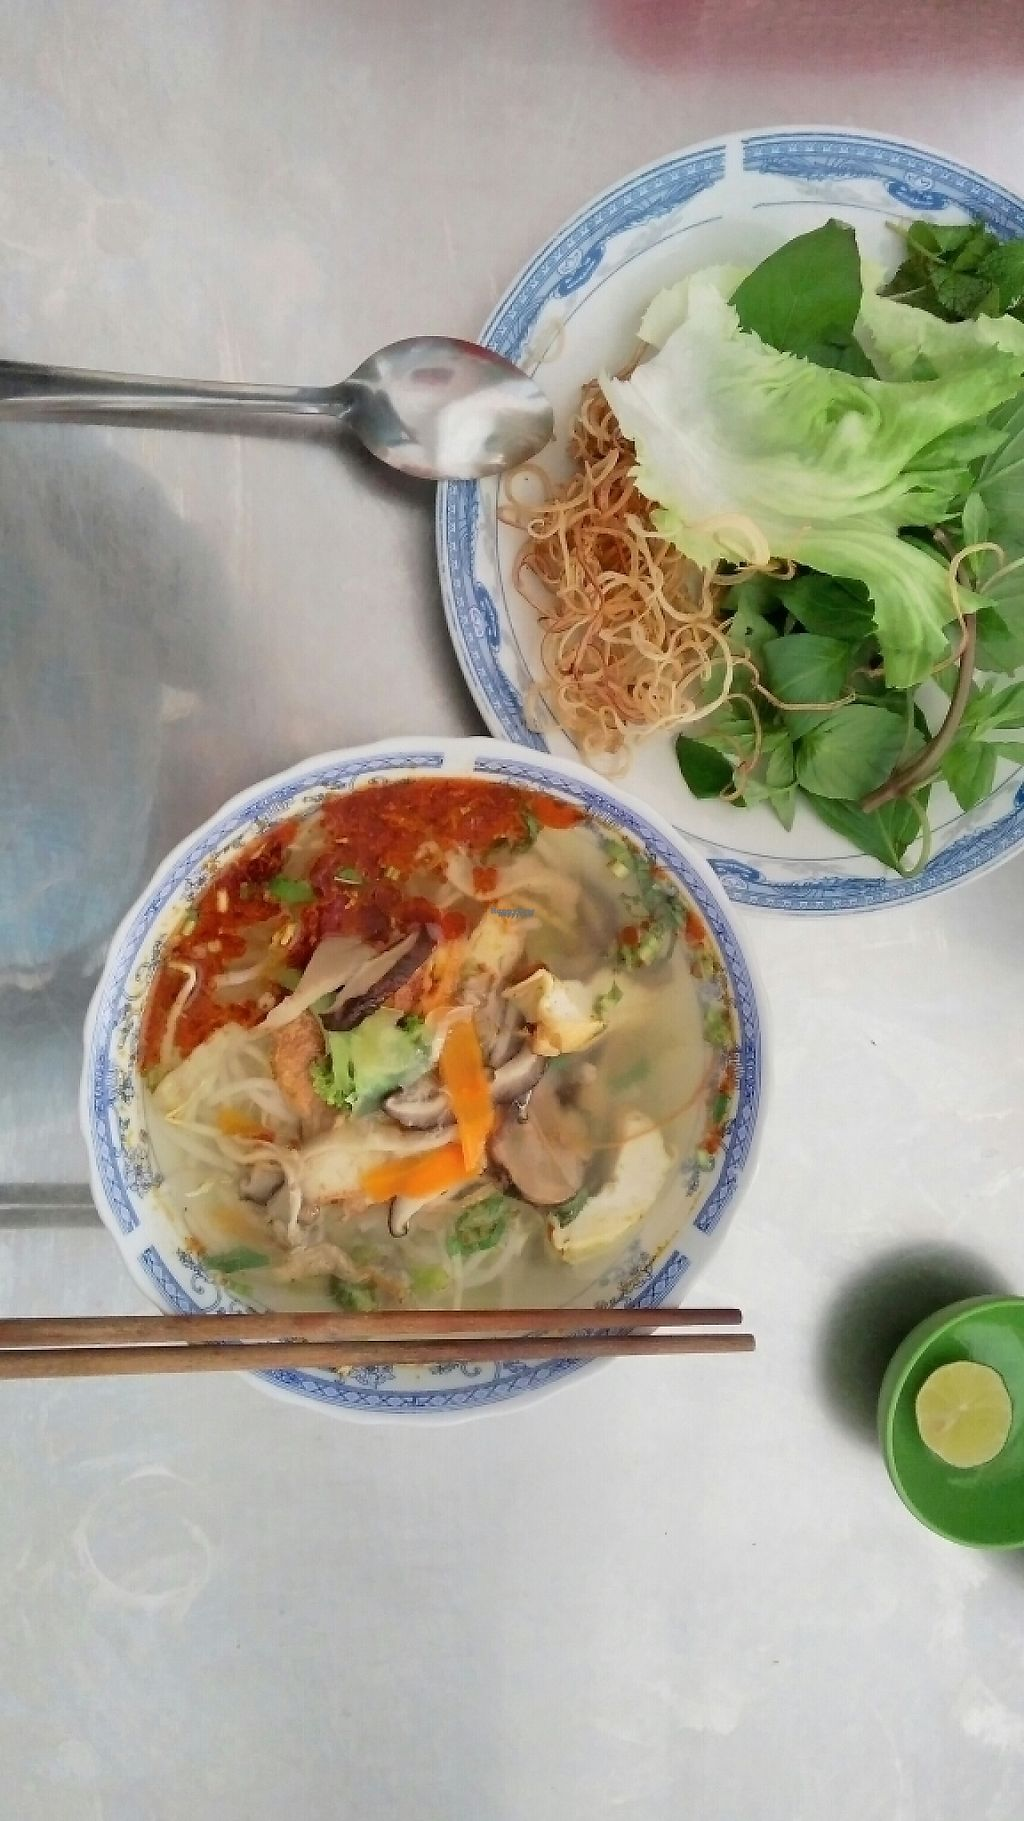 """Photo of Long Hoa - maybe closed  by <a href=""""/members/profile/Hanna.Flovers"""">Hanna.Flovers</a> <br/>Beef noodle  <br/> February 13, 2017  - <a href='/contact/abuse/image/53632/226259'>Report</a>"""